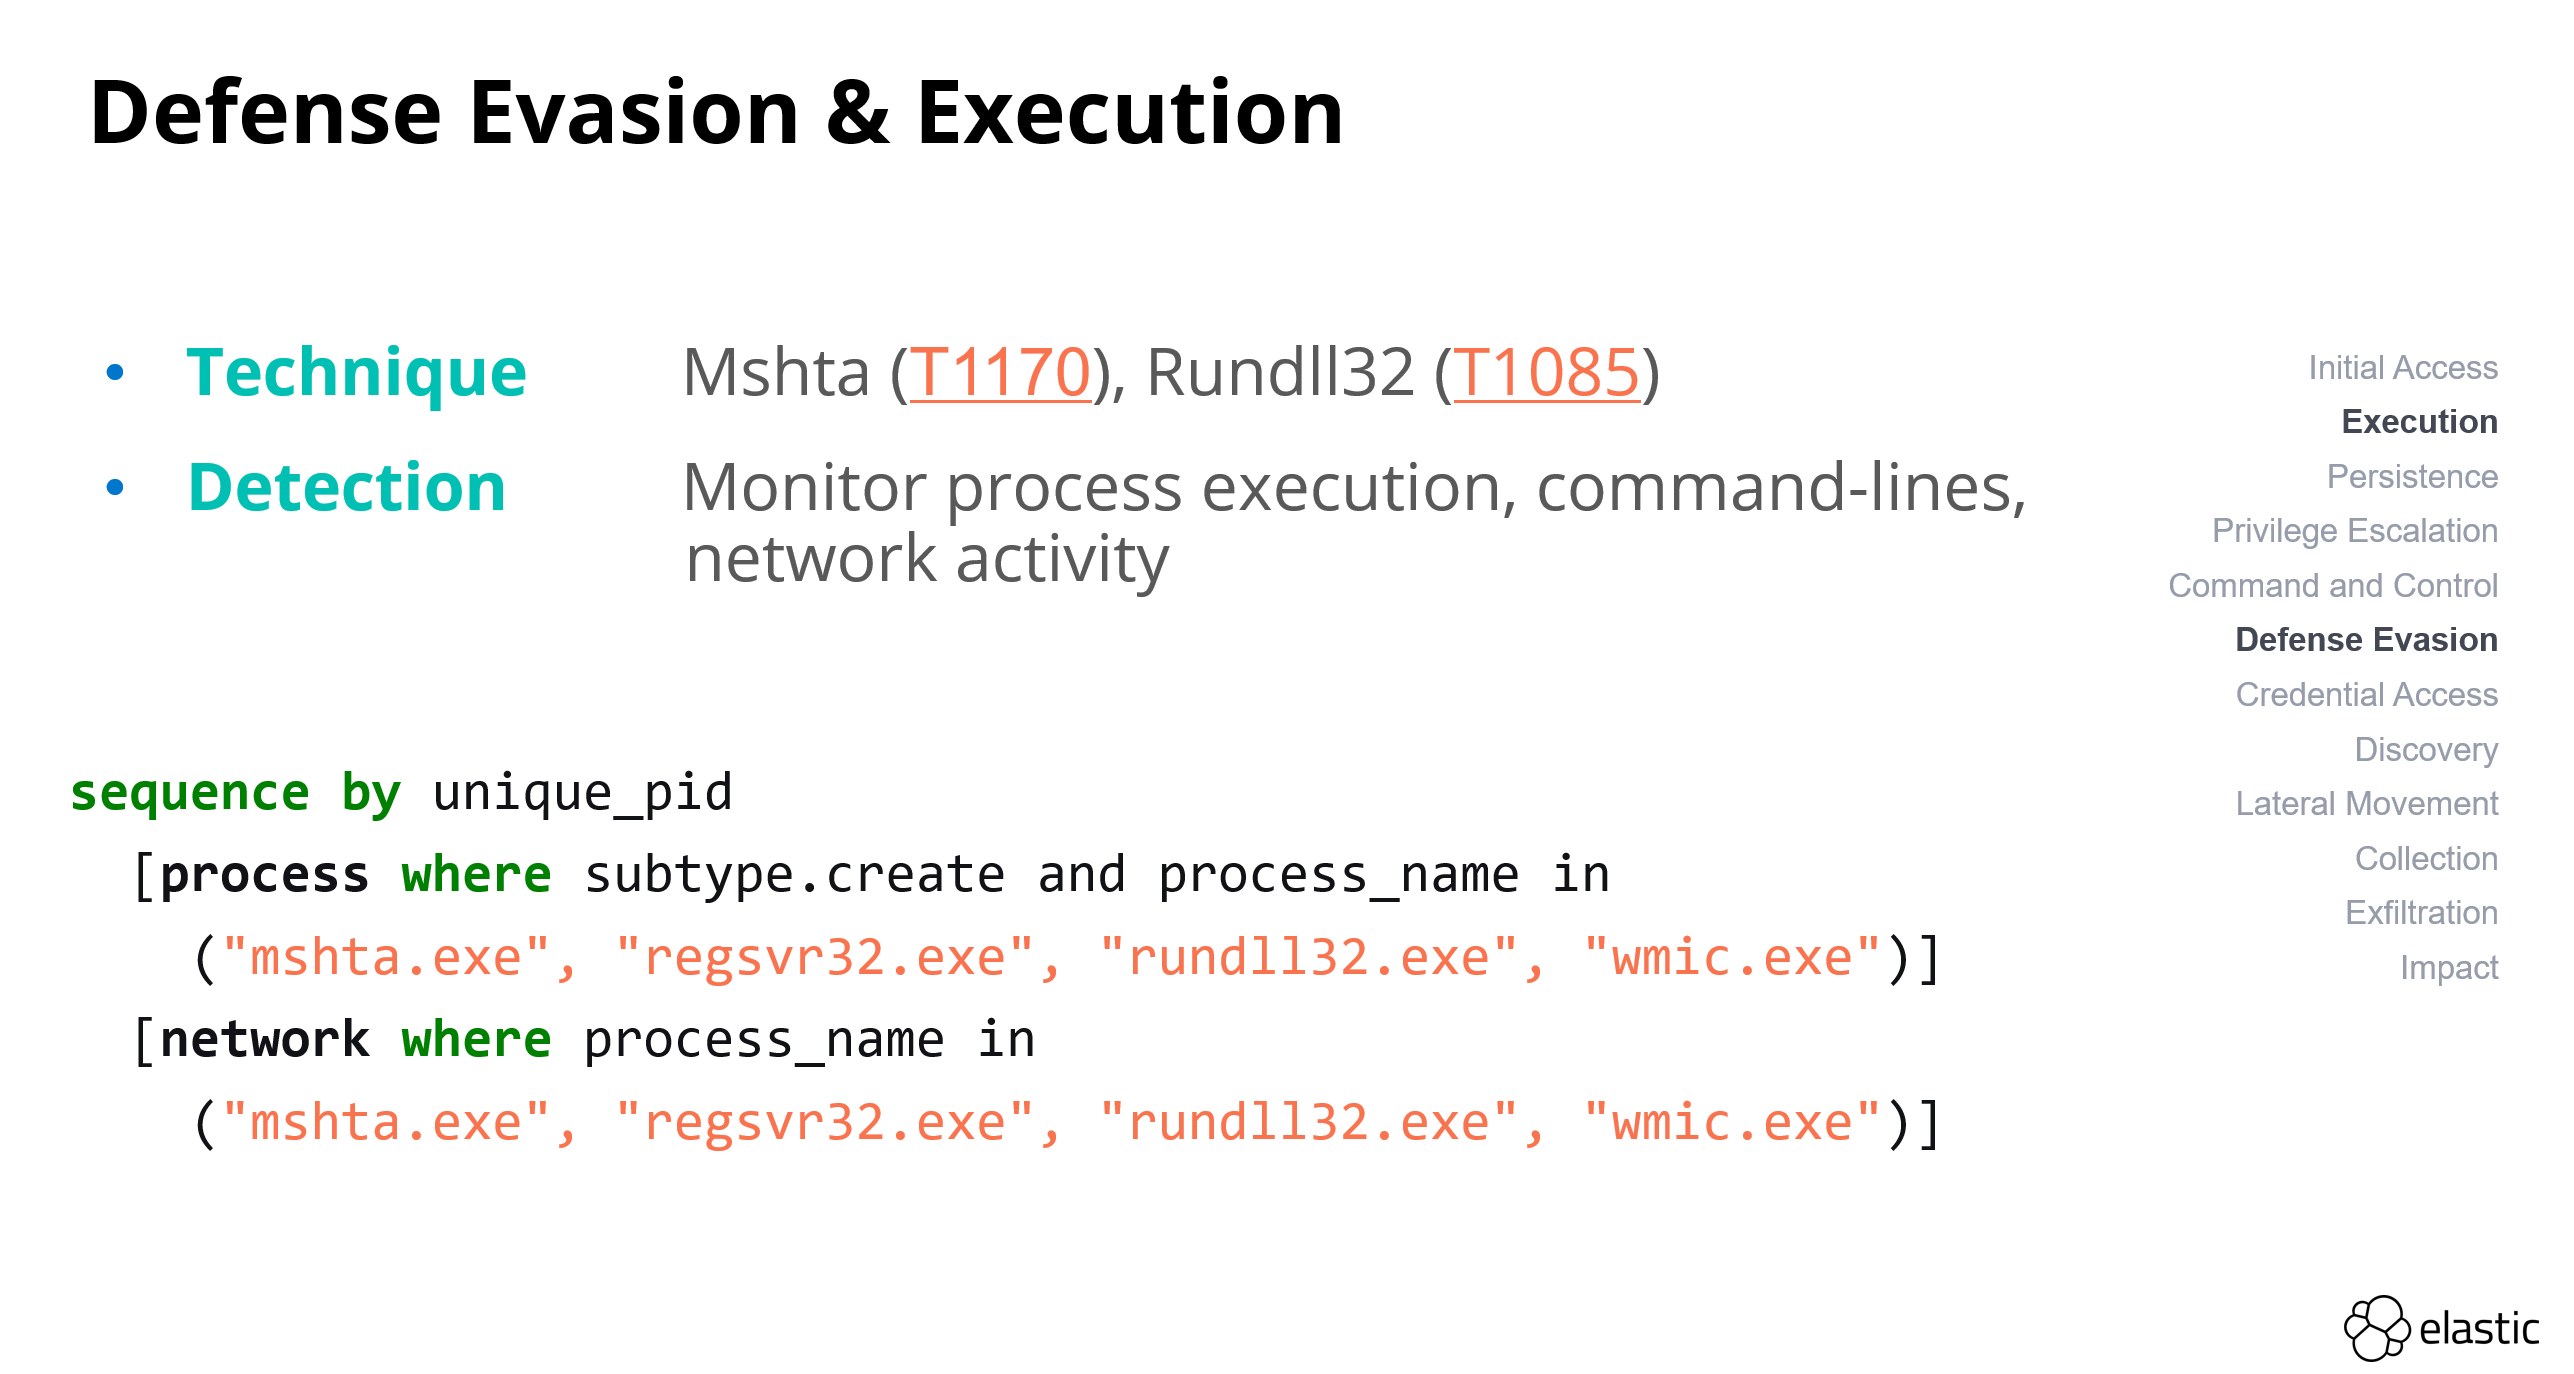 Defense evasion and execution - Mshta